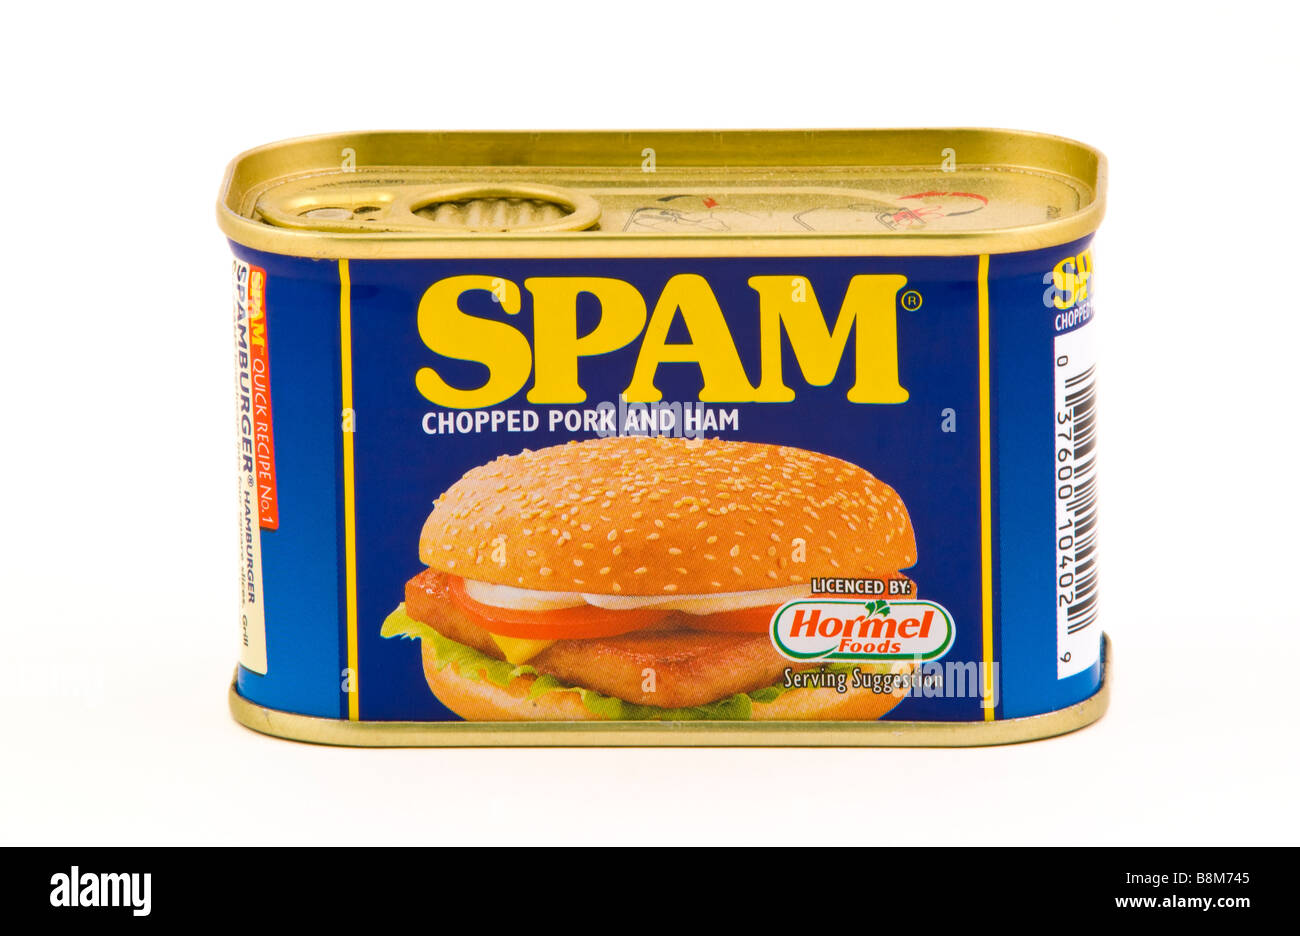 Can of SPAM chopped pork and ham sold in the UK - Stock Image